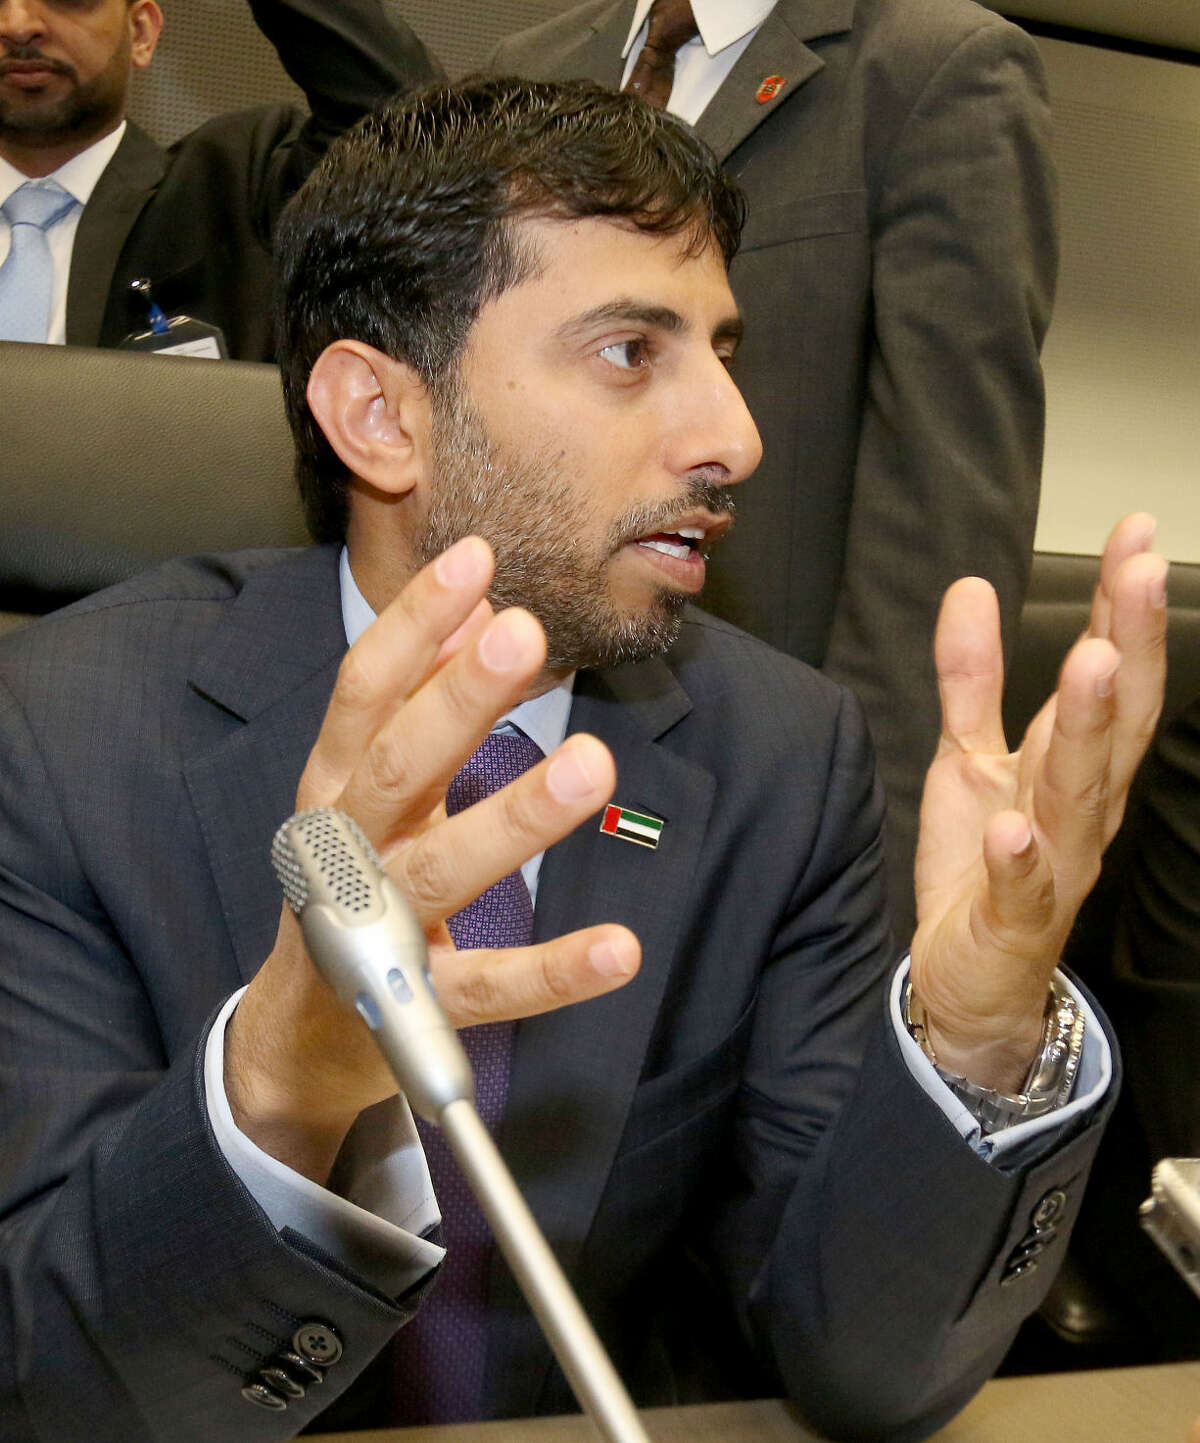 Suhail Mohamed Al Mazrouei, Minister of Energy of the United Arab Emirates, UAE, speaks to journalists prior to the start of a meeting of the Organization of the Petroleum Exporting Countries, OPEC, at their headquarters in Vienna, Austria, Friday, June 5, 2015. (AP Photo/Ronald Zak)